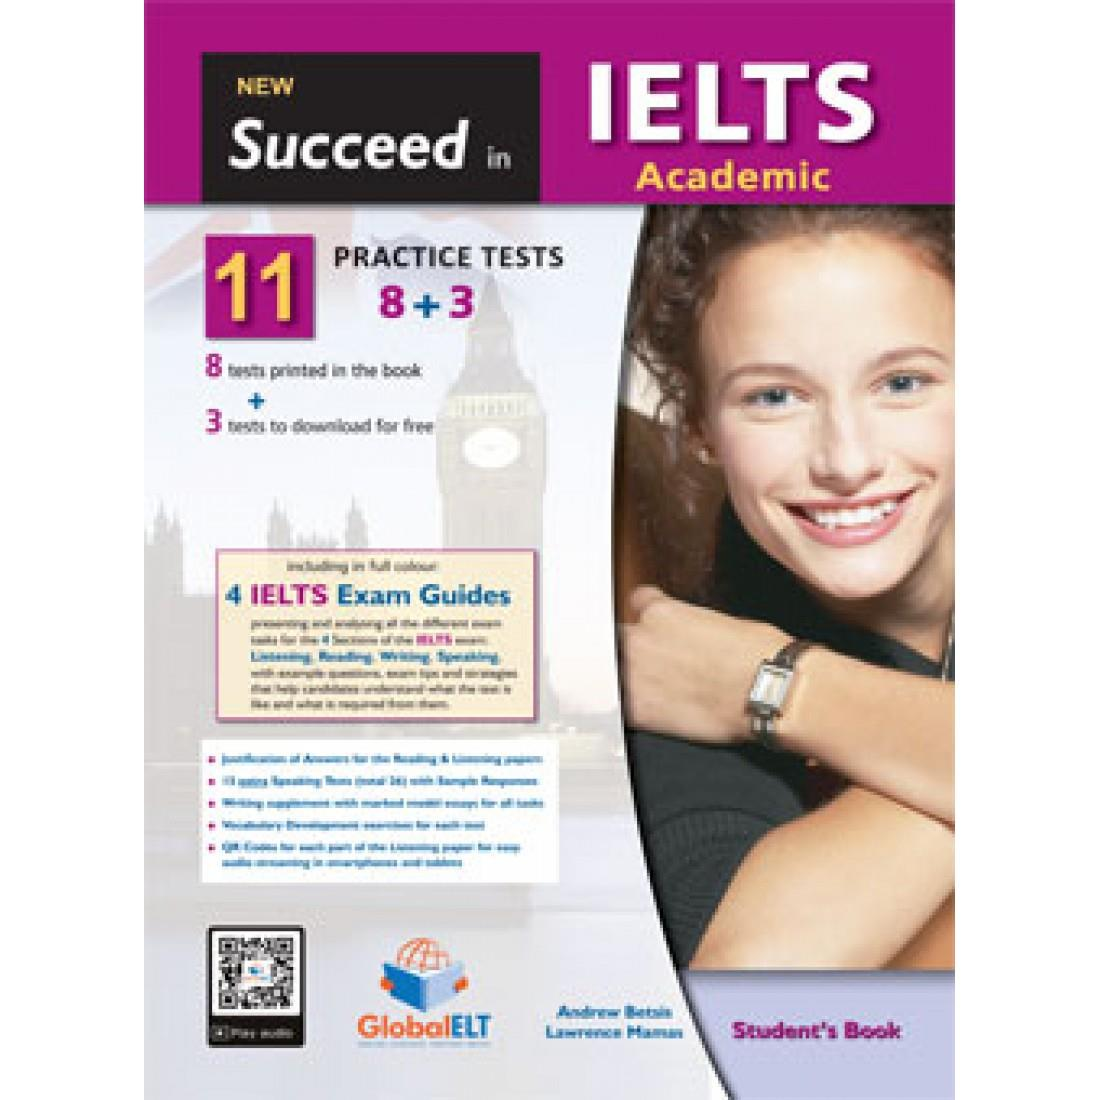 NEW SUCCEED IN IELTS ACADEMIC 11(8+3) PRACTICE TESTS SB